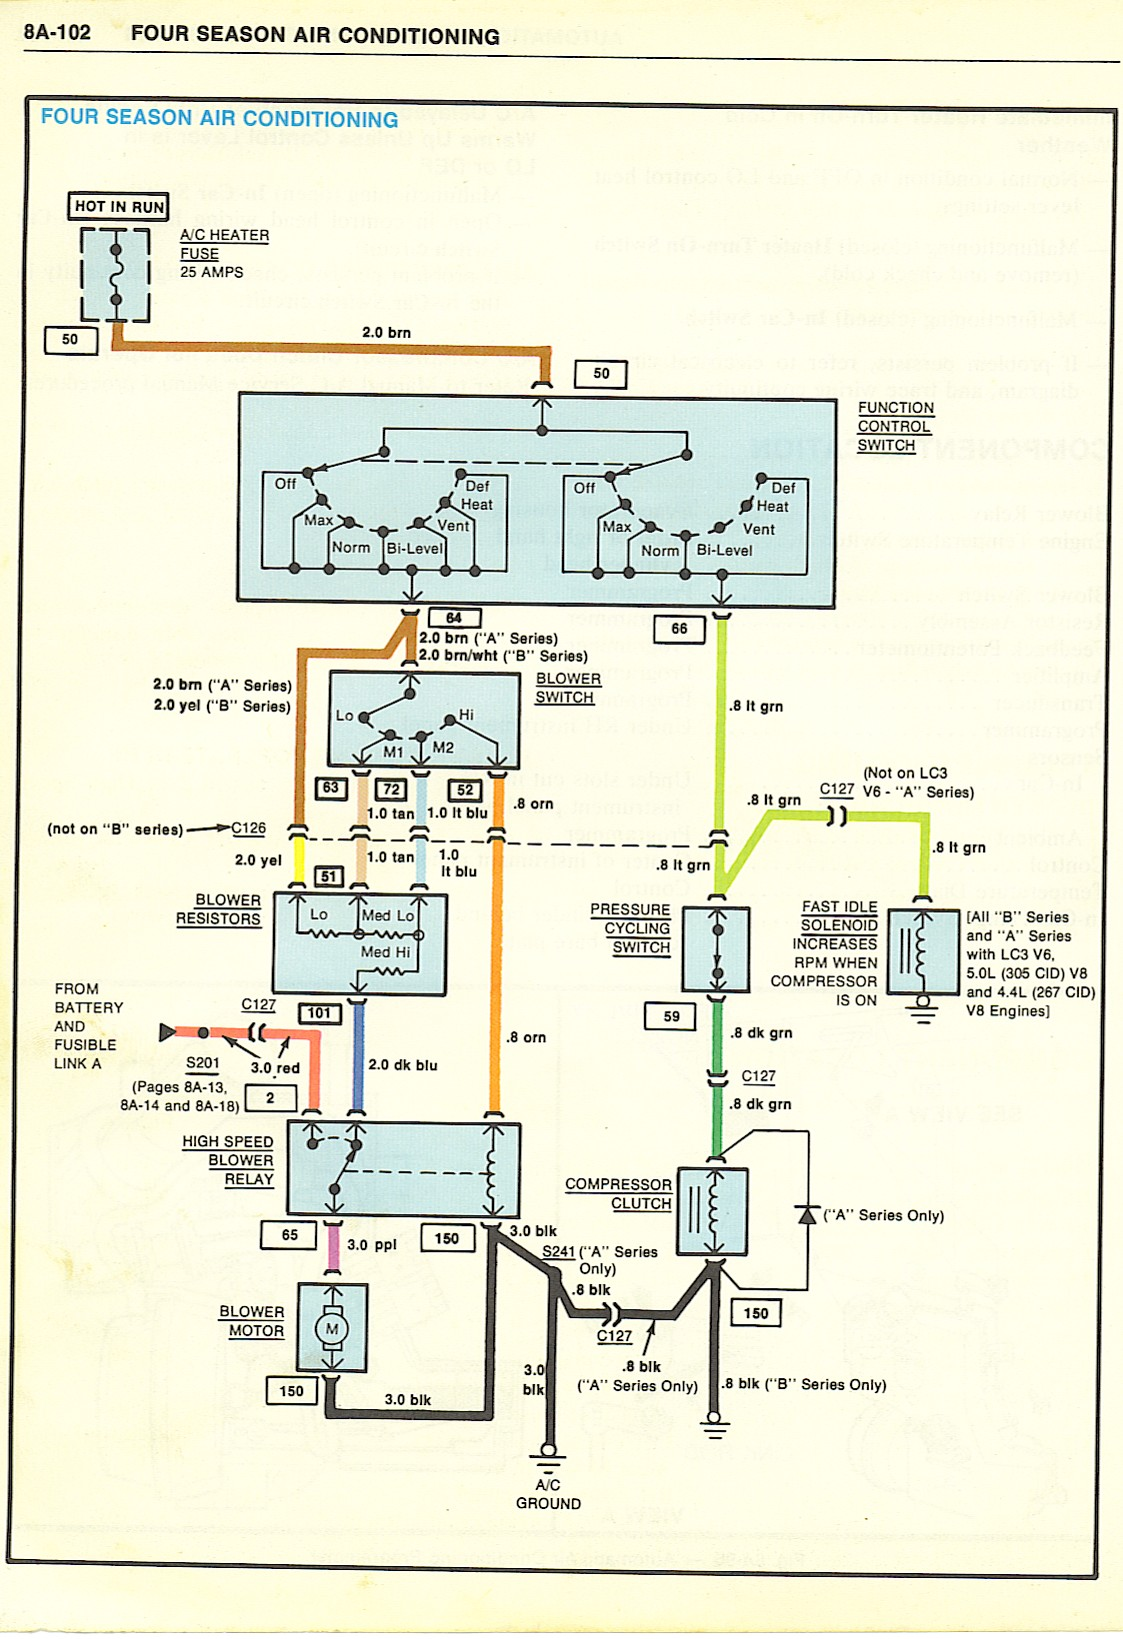 Kw T800 Ac Wiring Diagram Trusted Schematics Kenworth W900 Schematic Ecm Air Conditioning Electrical 2004